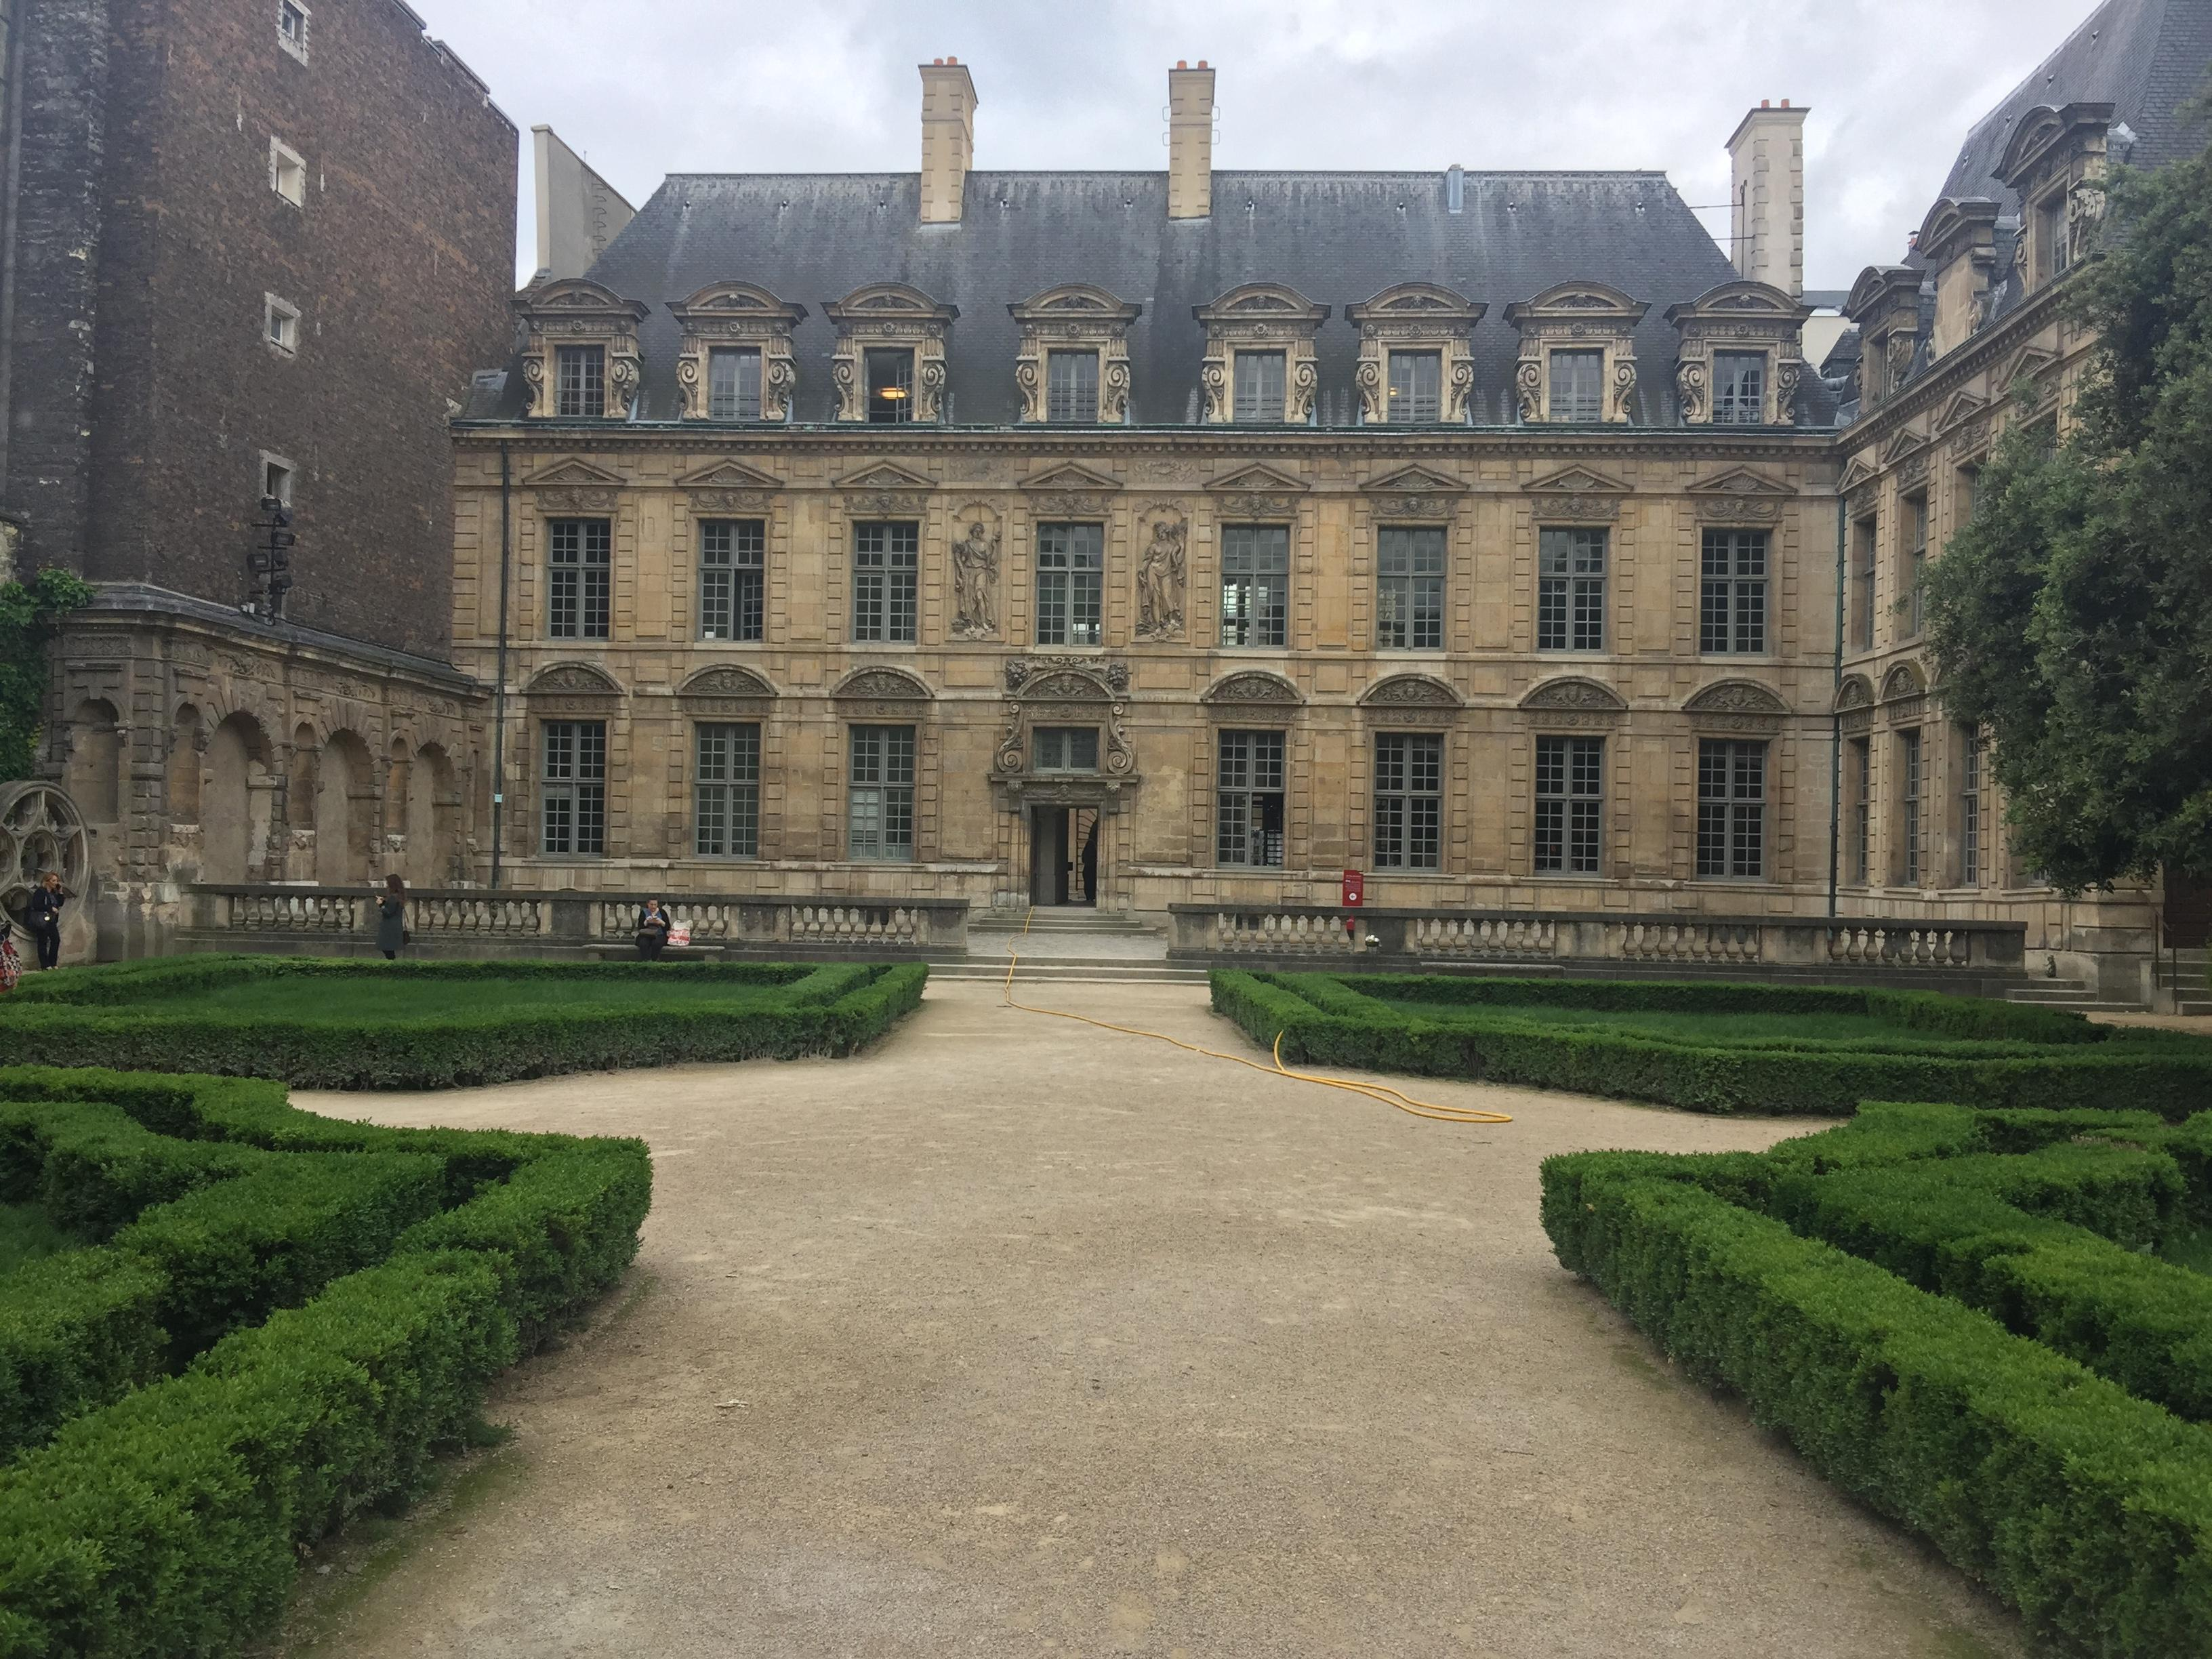 Hotel de Sully Paris near Place des Vosges